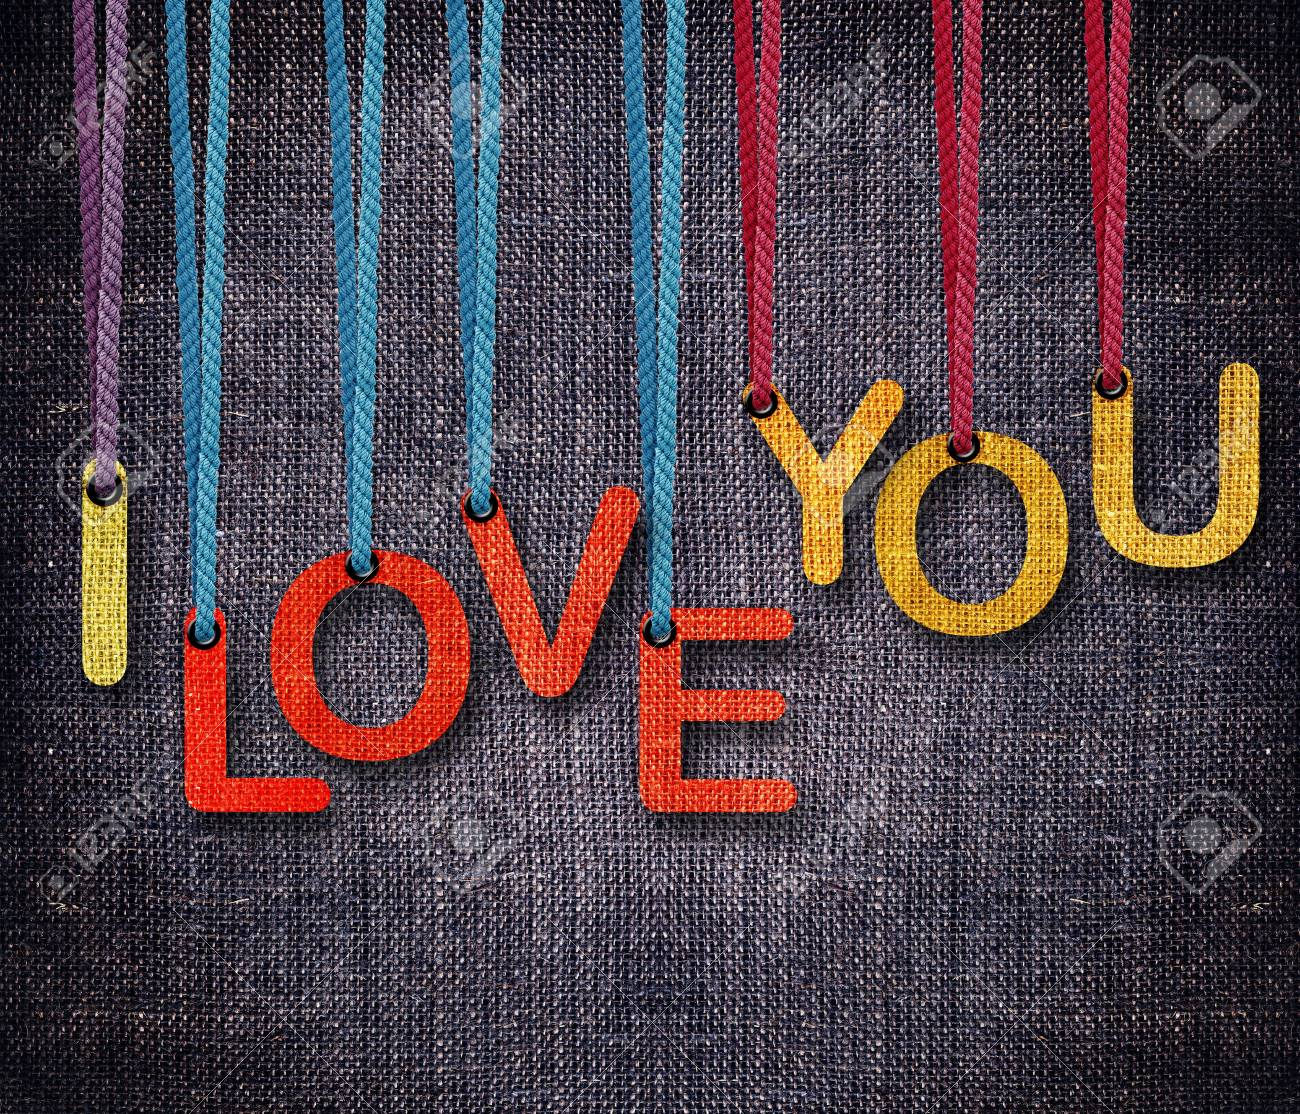 I love you hunging by rope as puppeteer on sackcloth background